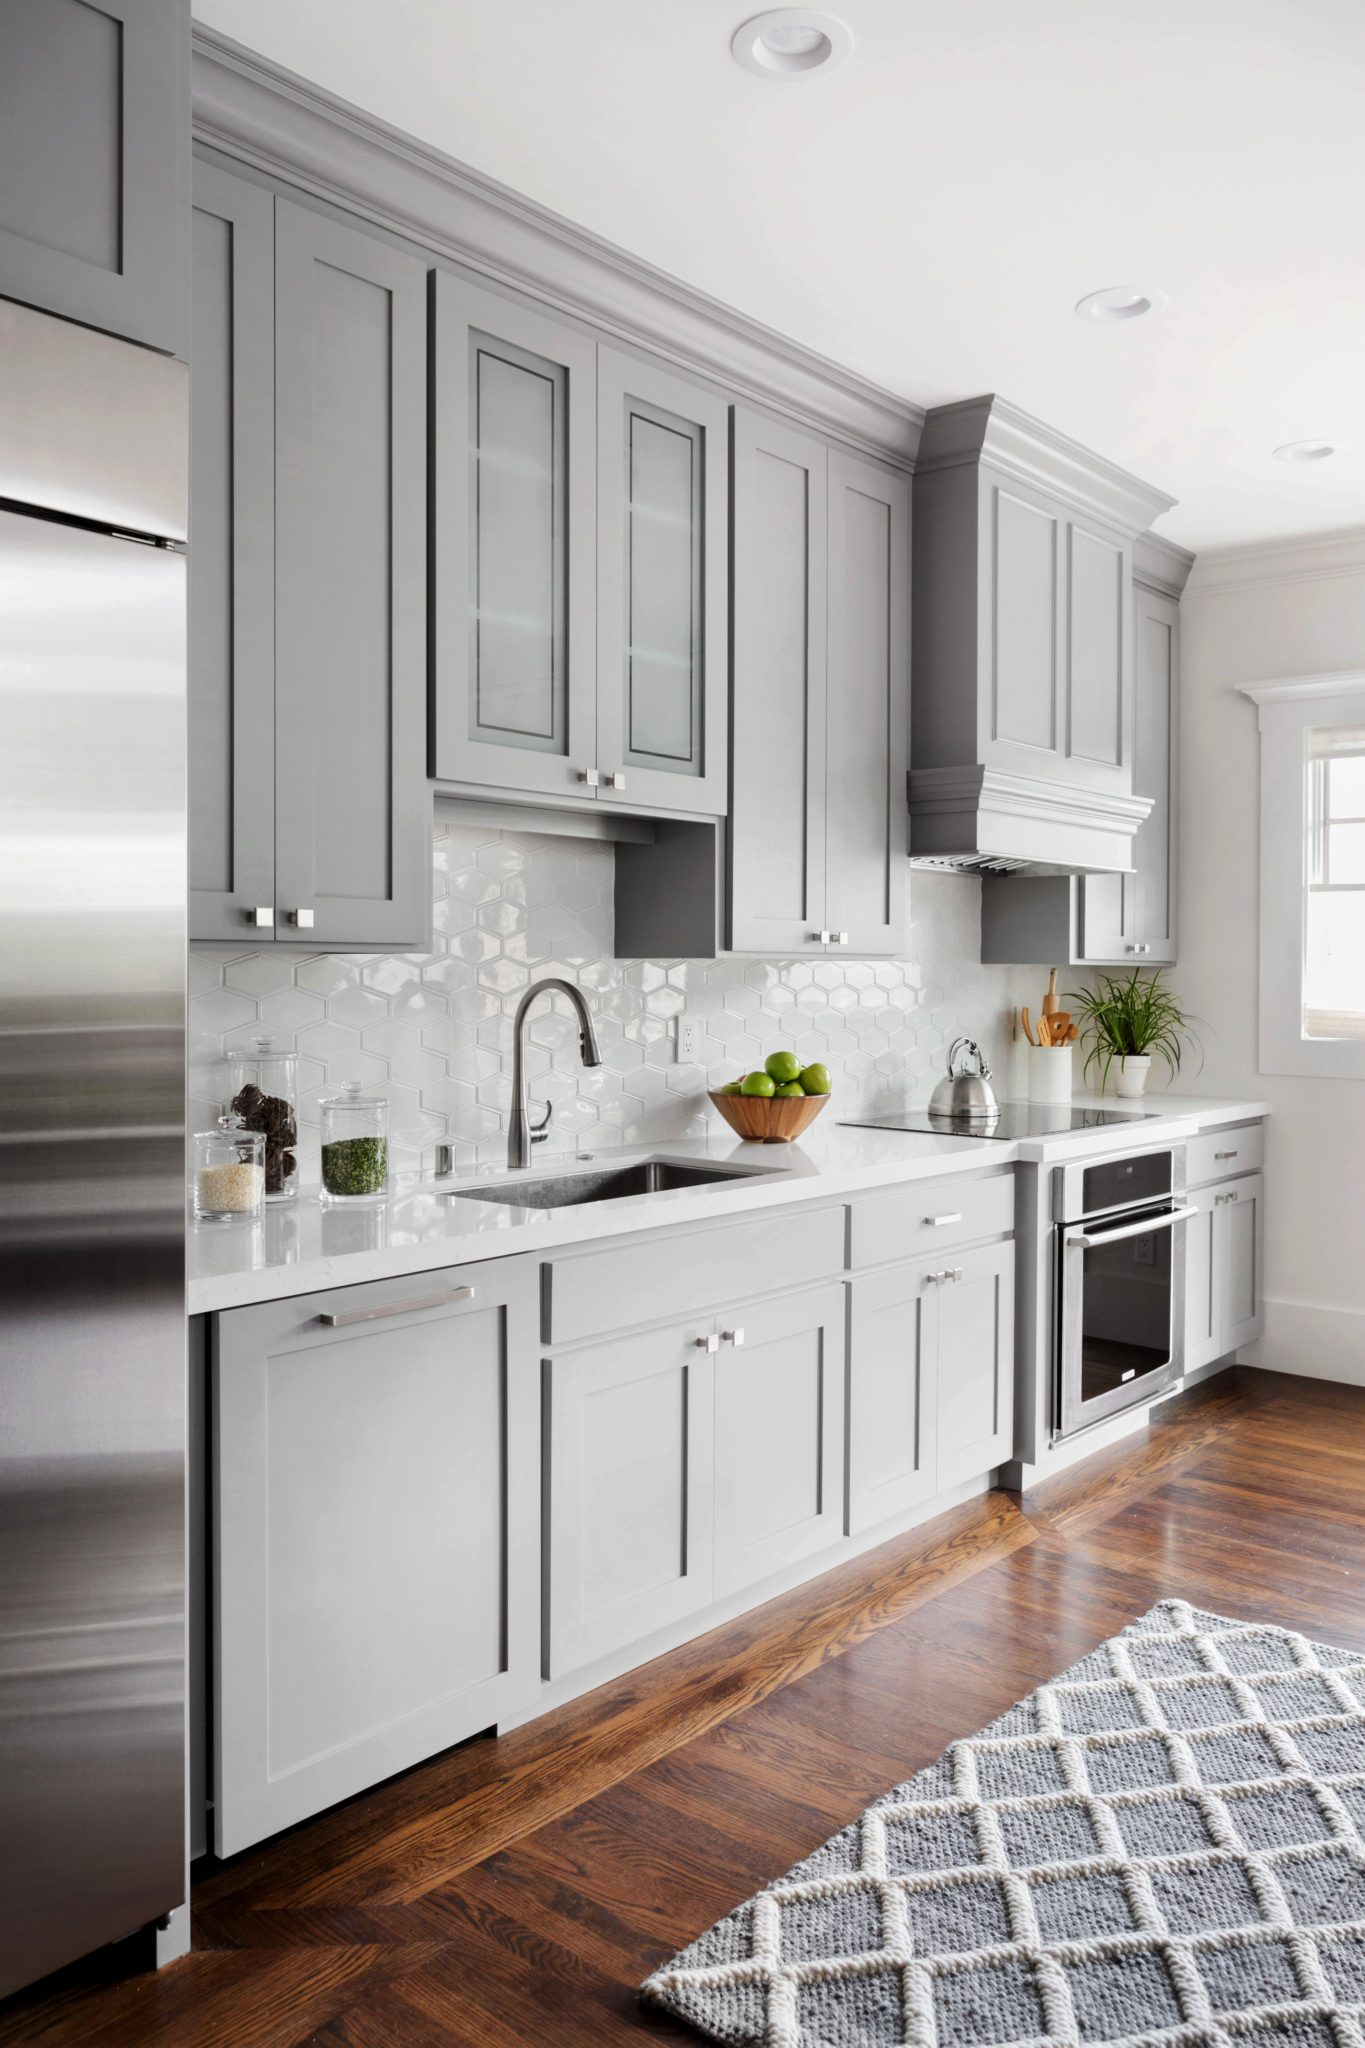 The Avenues Arts and Crafts kitchen by Suzanne Childress Design